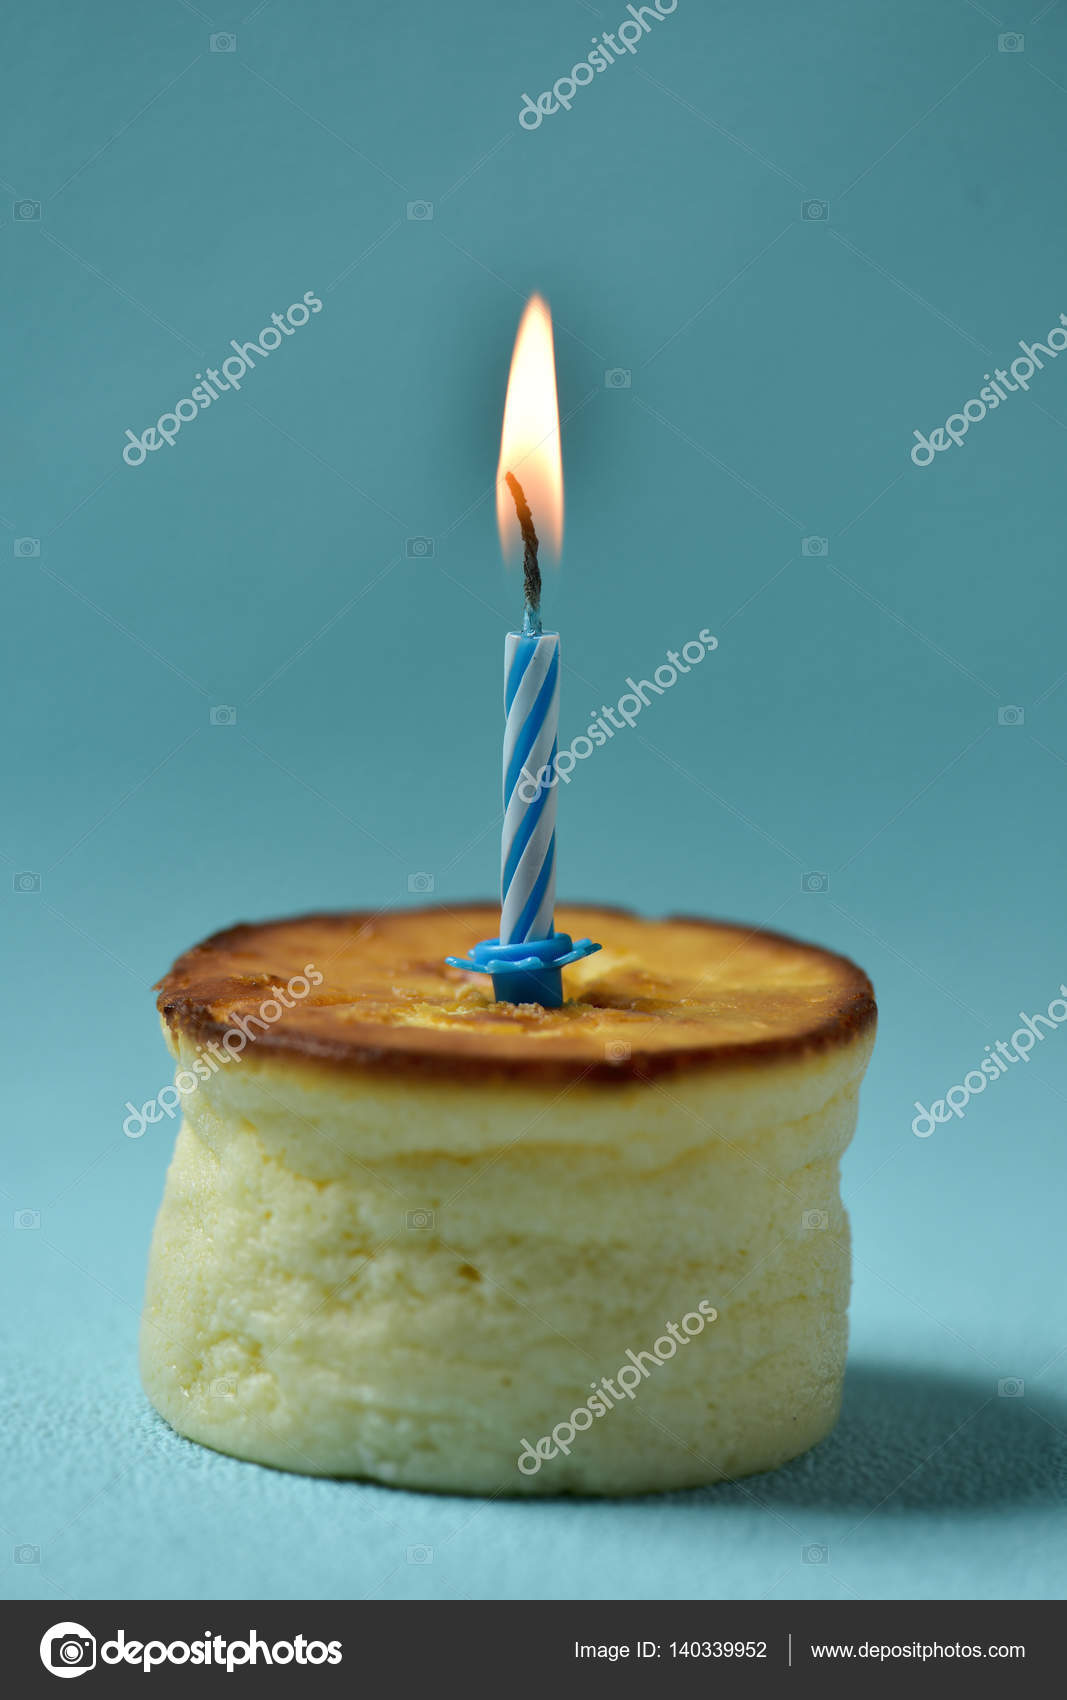 lit birthday candle on a cheesecake stock photo nito103 140339952